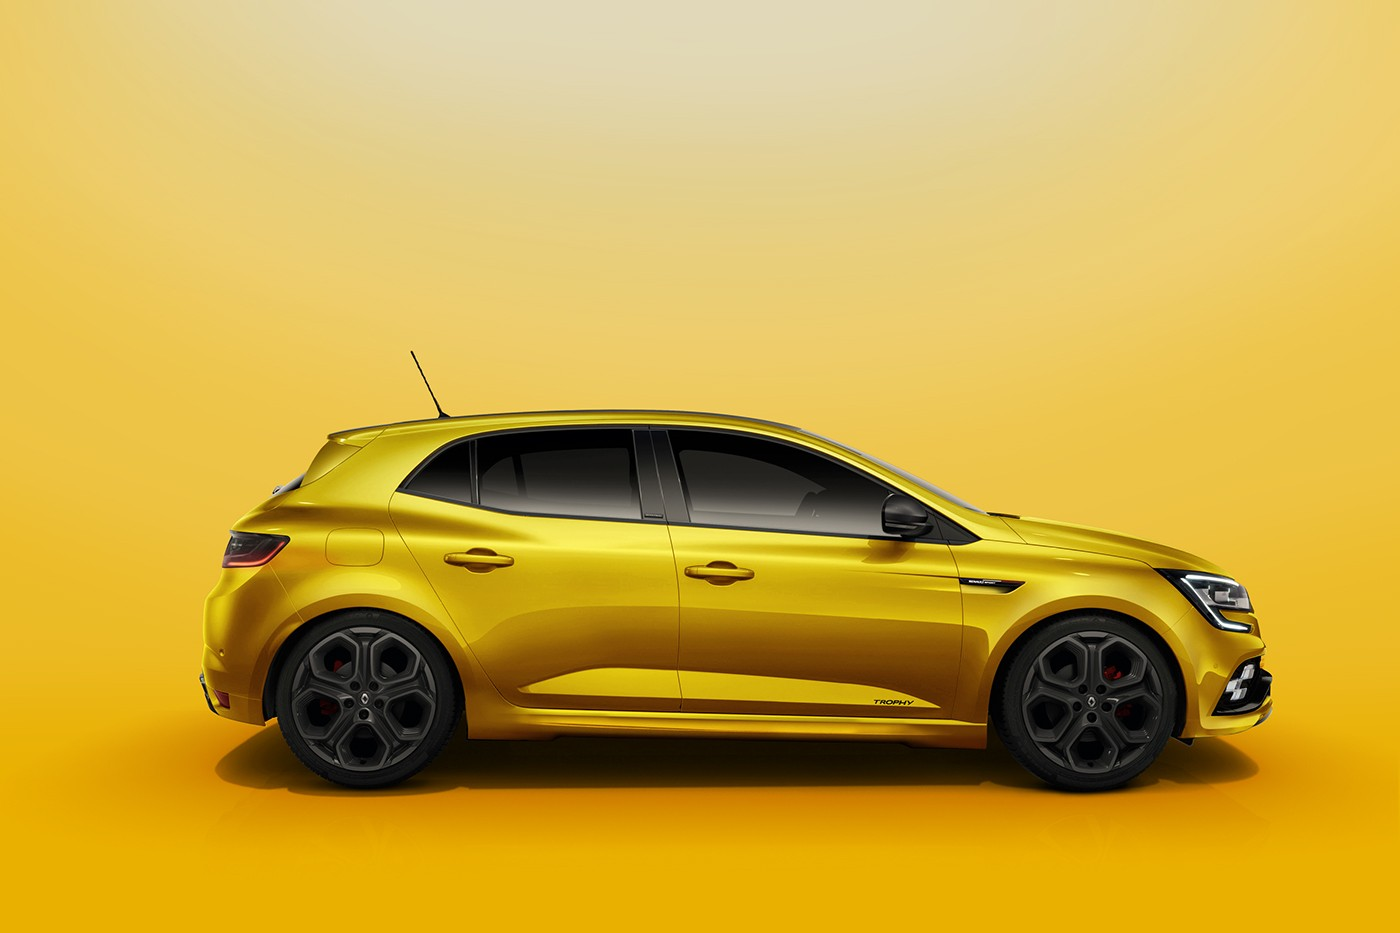 2018 renault rs. Interesting 2018 2018 Renault Megane RS Rendering By Monholo Oumar Inside Renault Rs A